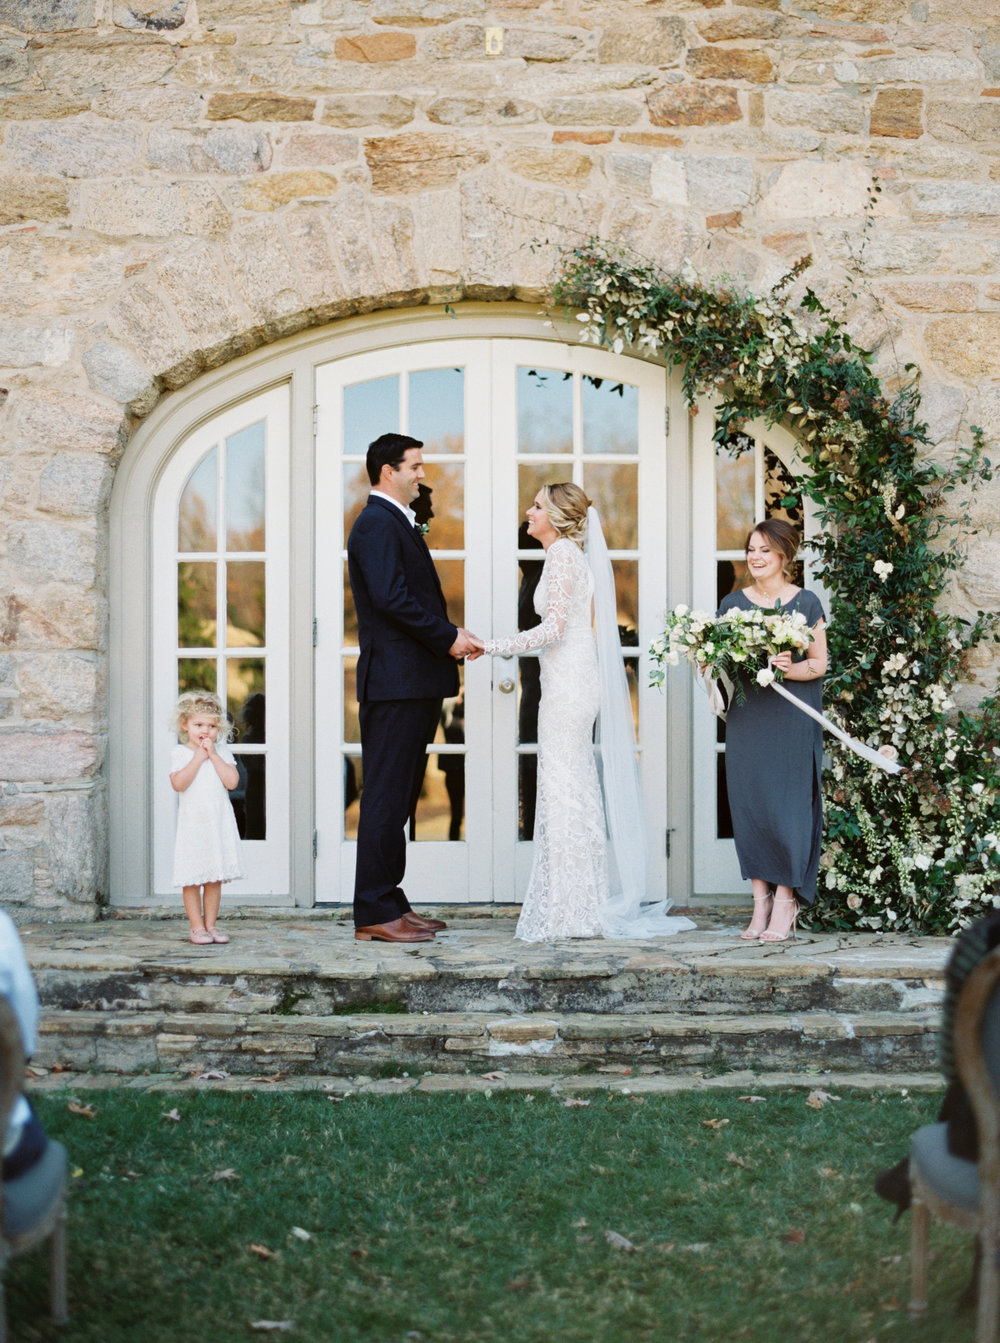 Kate Phillips Events, Virginia Event Planner